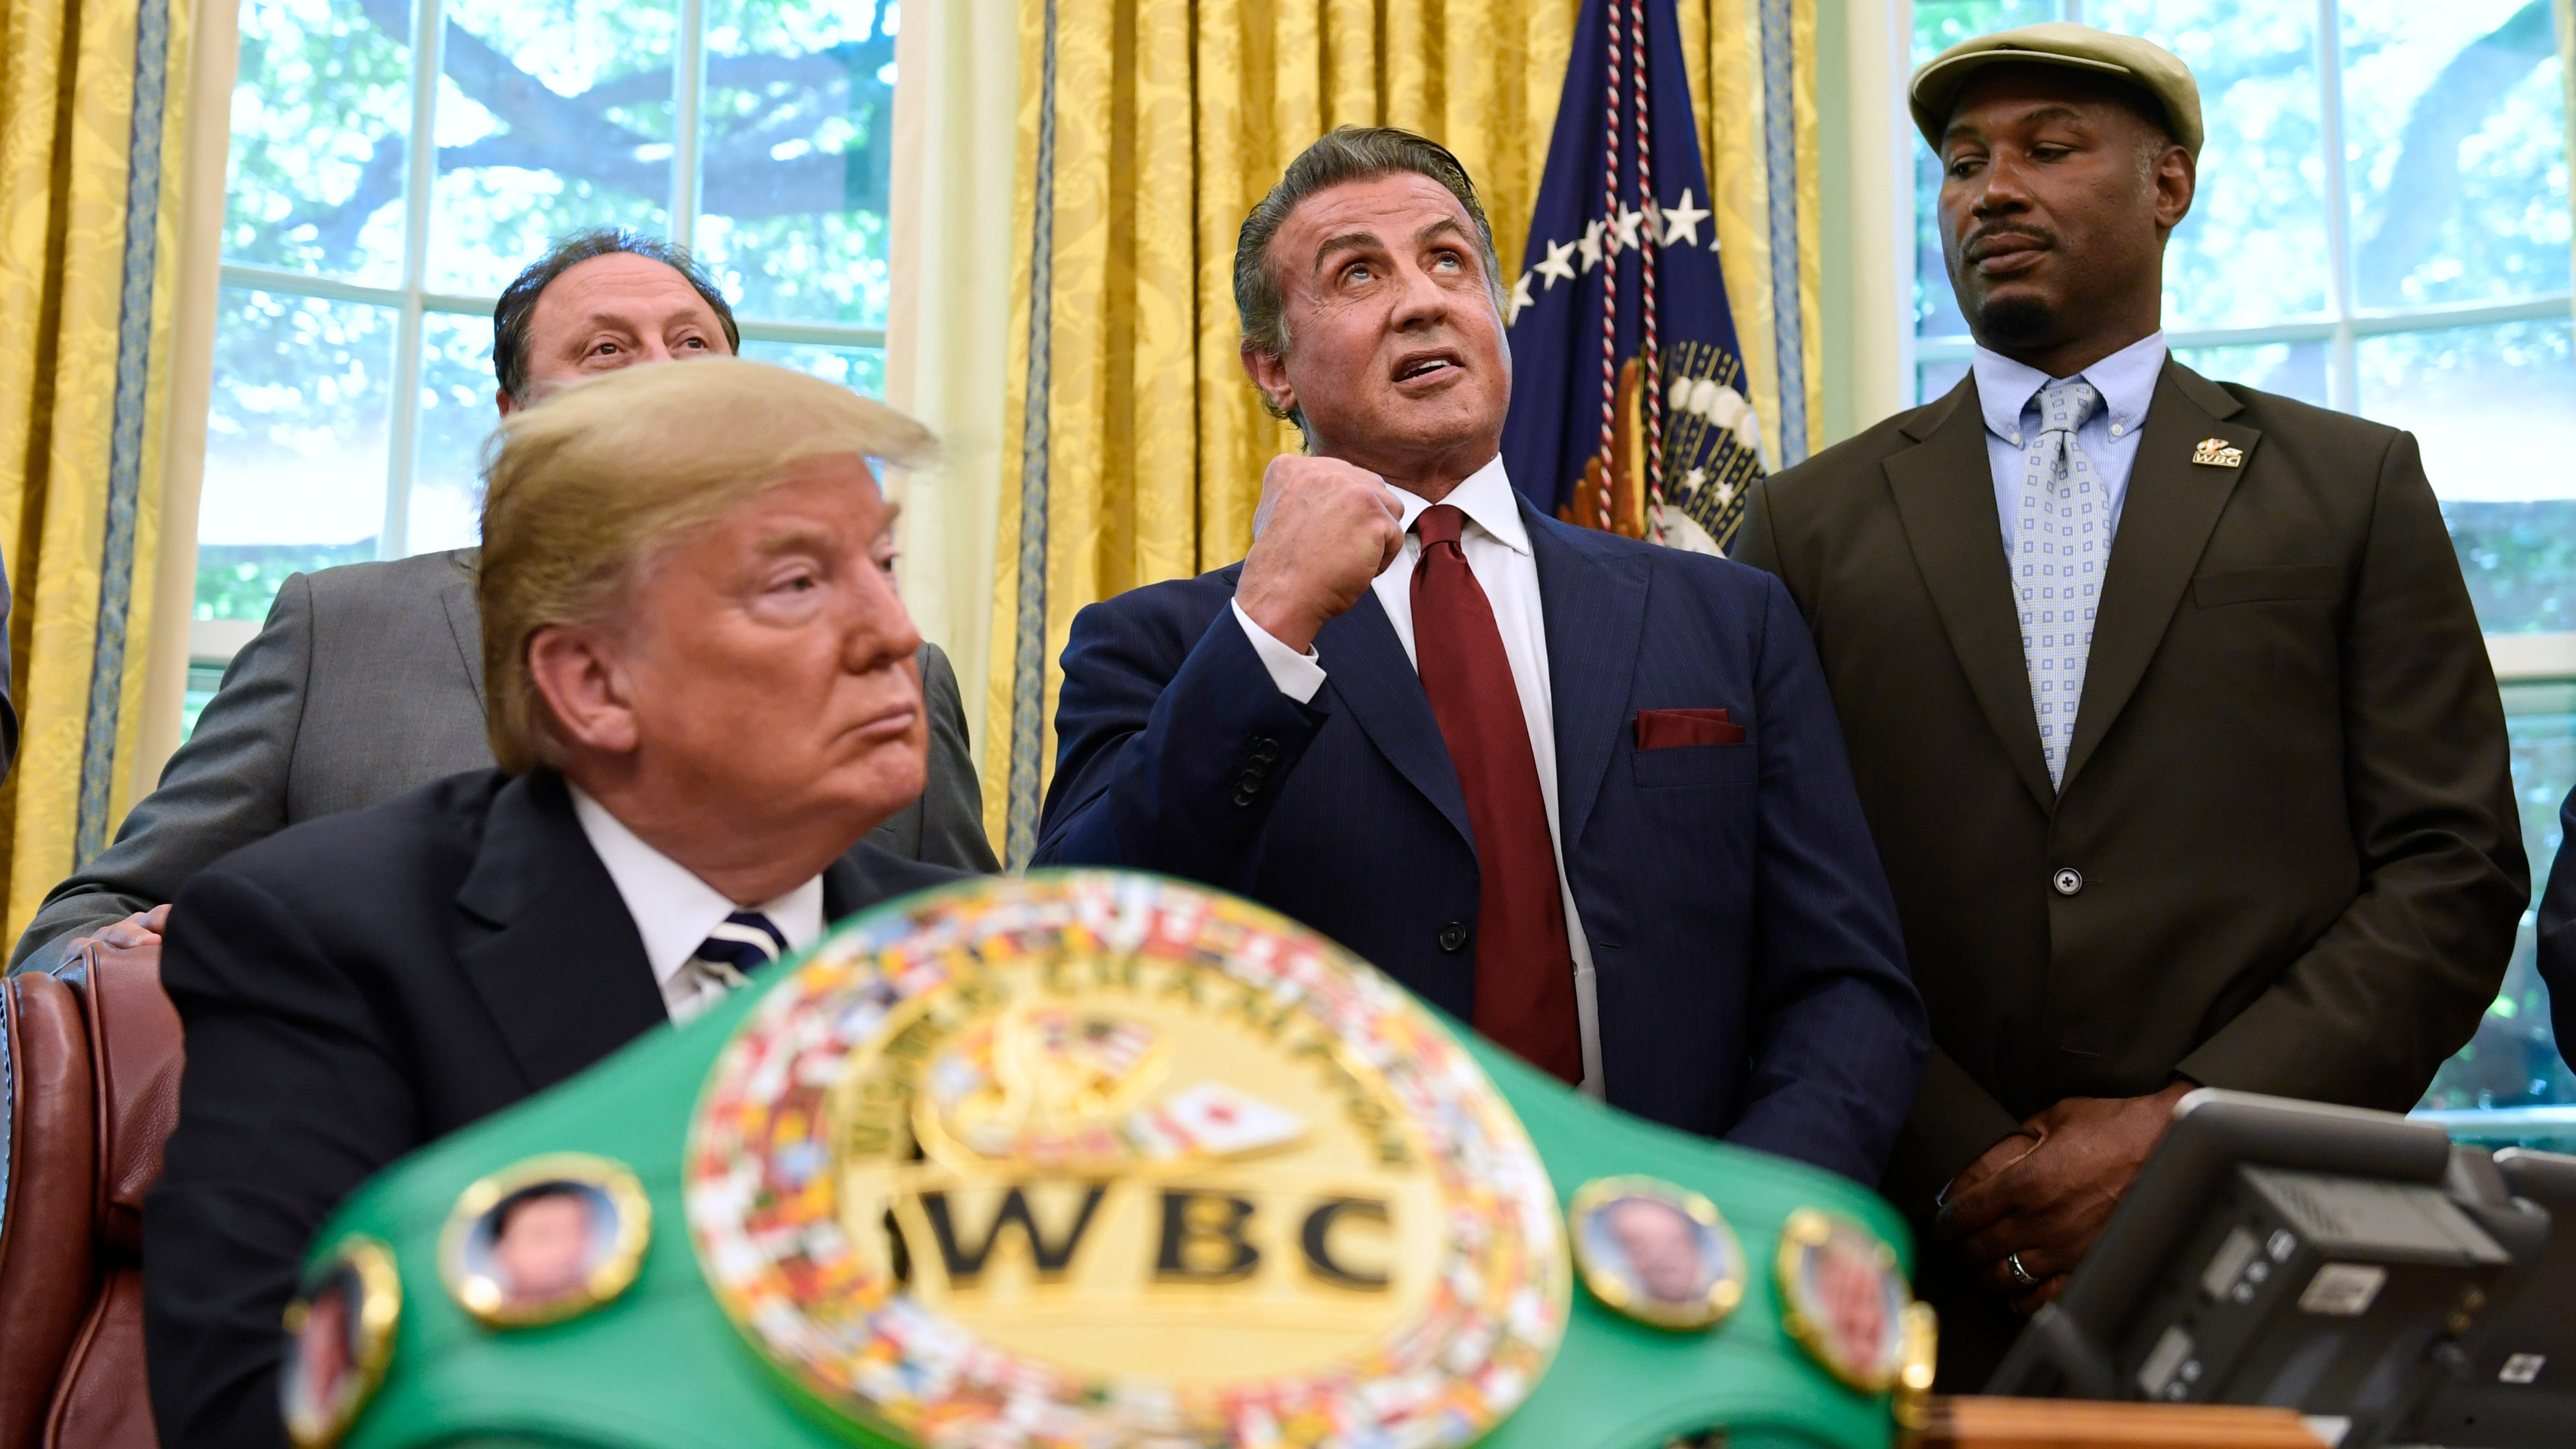 FILE - In this May 24, 2018 file photo, President Donald Trump, left, and heavyweight champion boxer, Lennox Lewis, right, watch as Sylvester Stallone gestures in the Oval Office of the White House in Washington, where Trump granted a posthumous pardon to Jack Johnson, boxing's first black heavyweight champion. Stallone has announced plans for a biopic on the first African American heavyweight champion. (AP Photo/Susan Walsh, File) ORG XMIT: NYET307